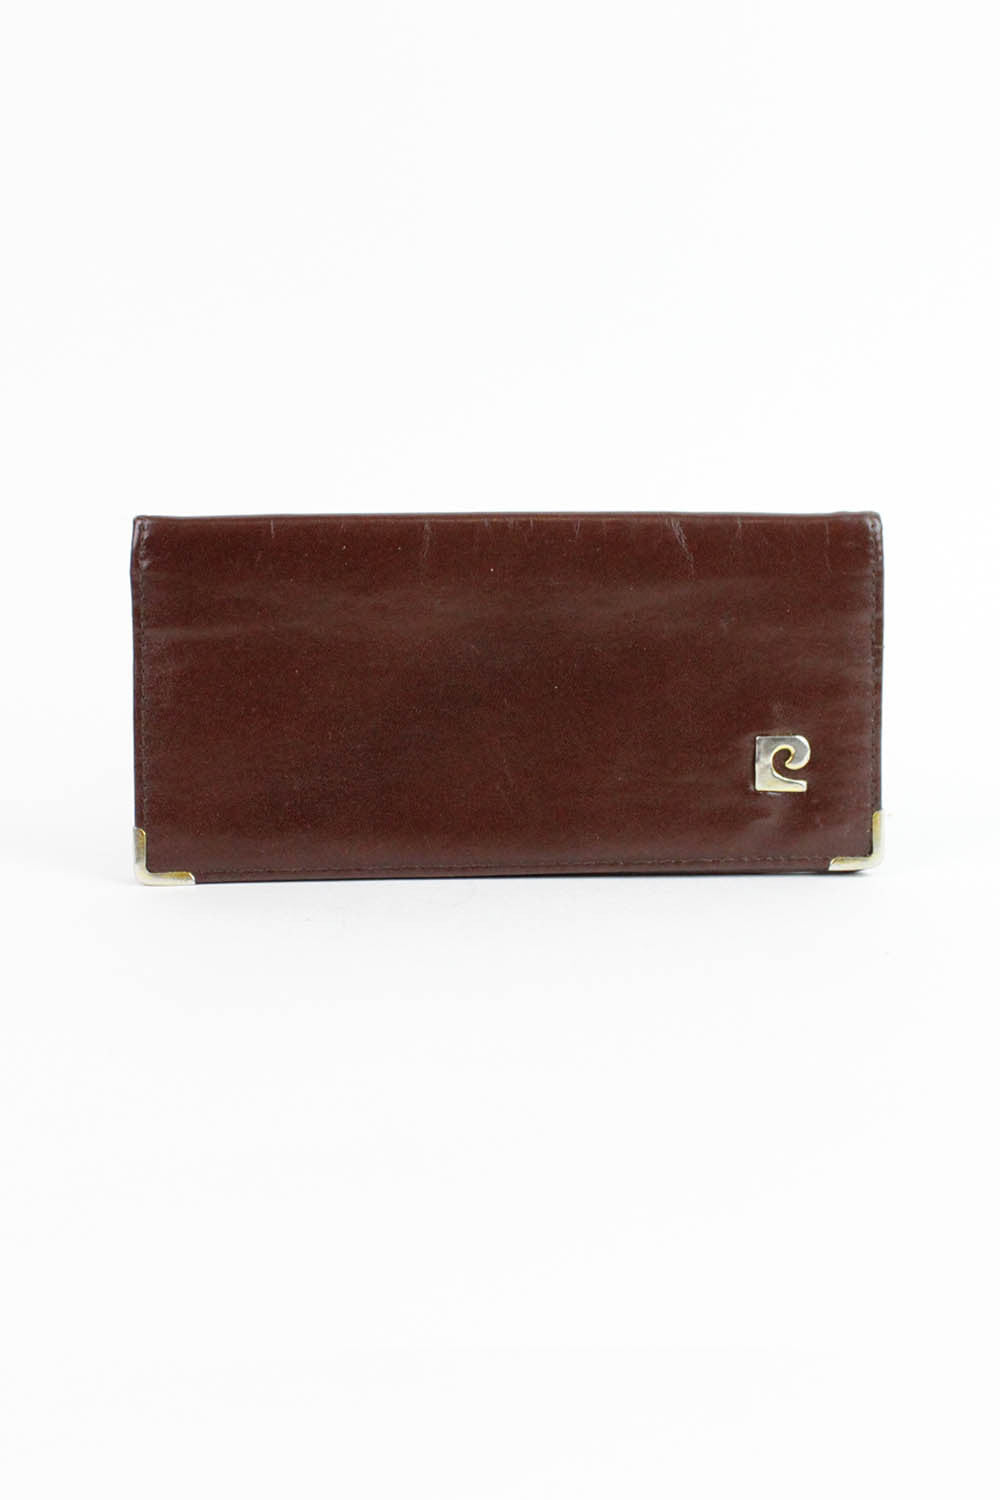 Pierre Cardin BEAR Wallet